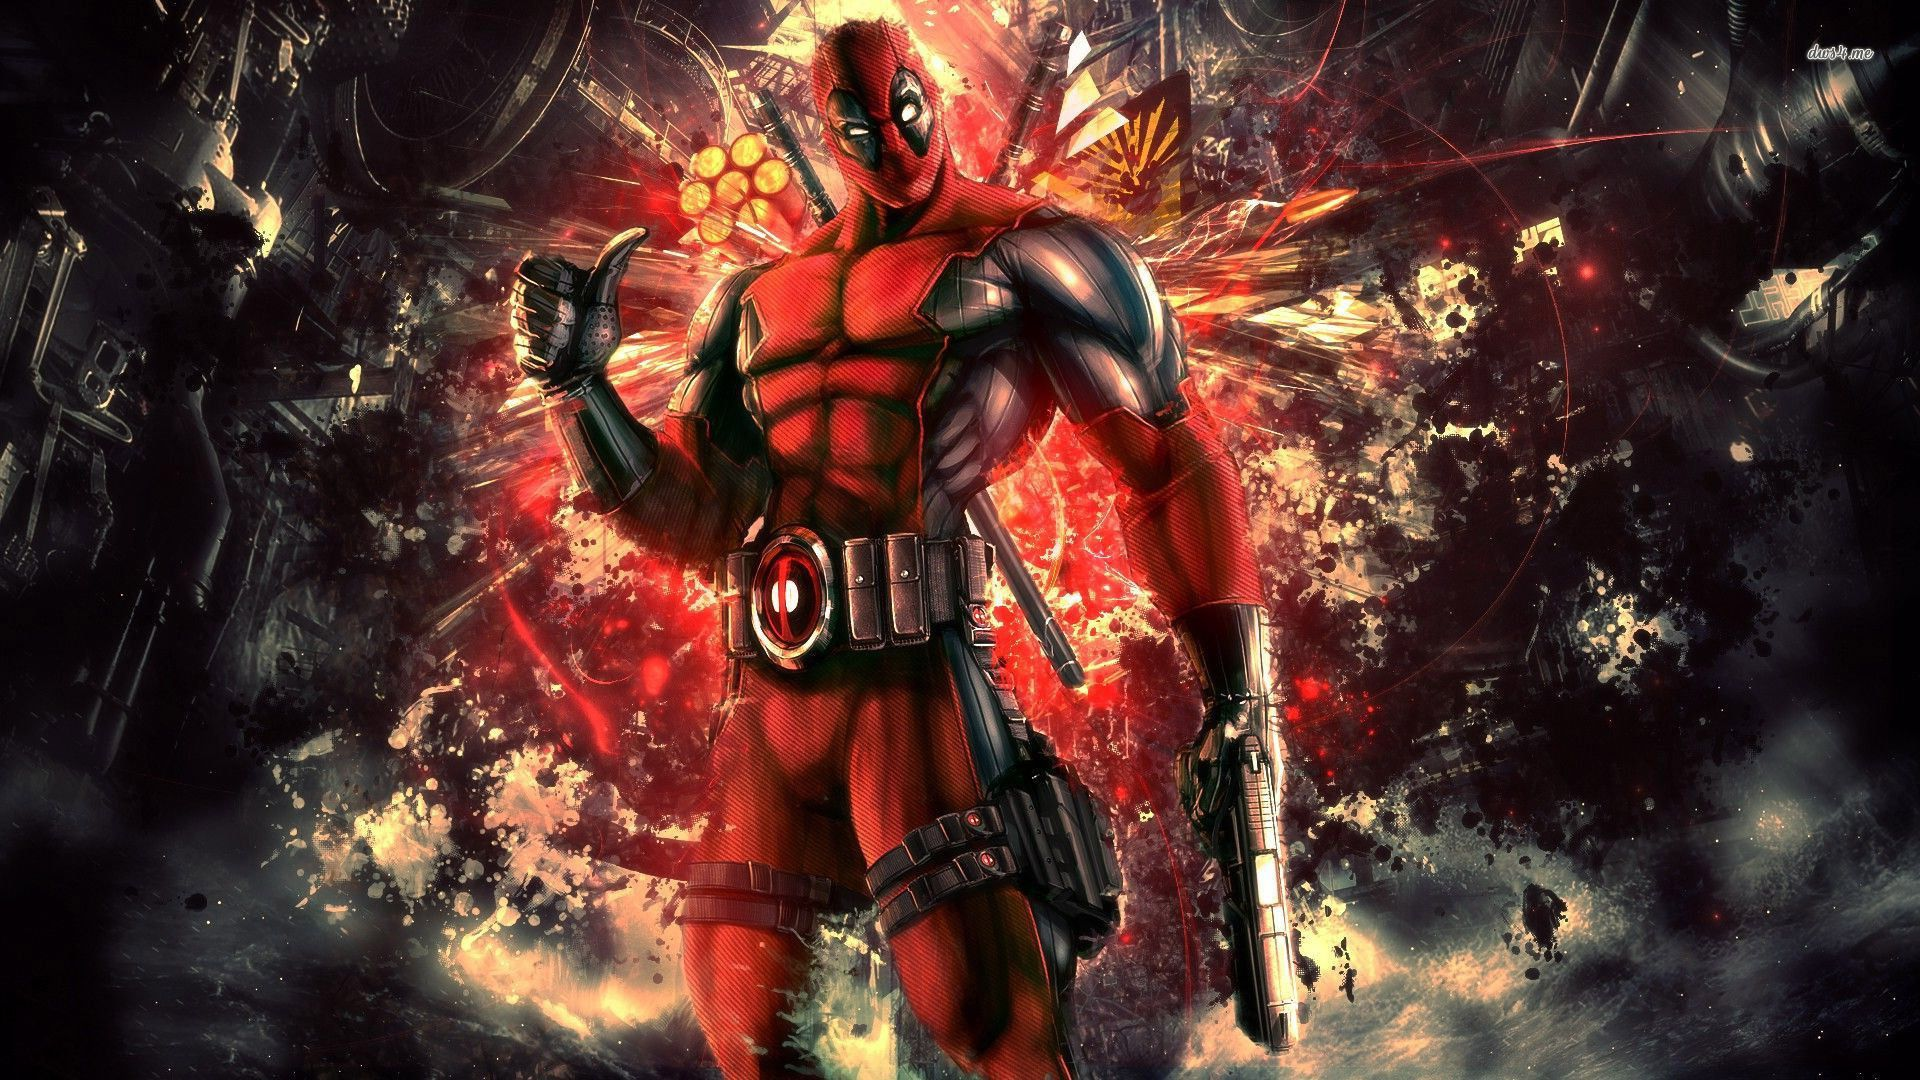 Deadpool Hd Wallpapers For Desktop Download Every Thing Deadpool